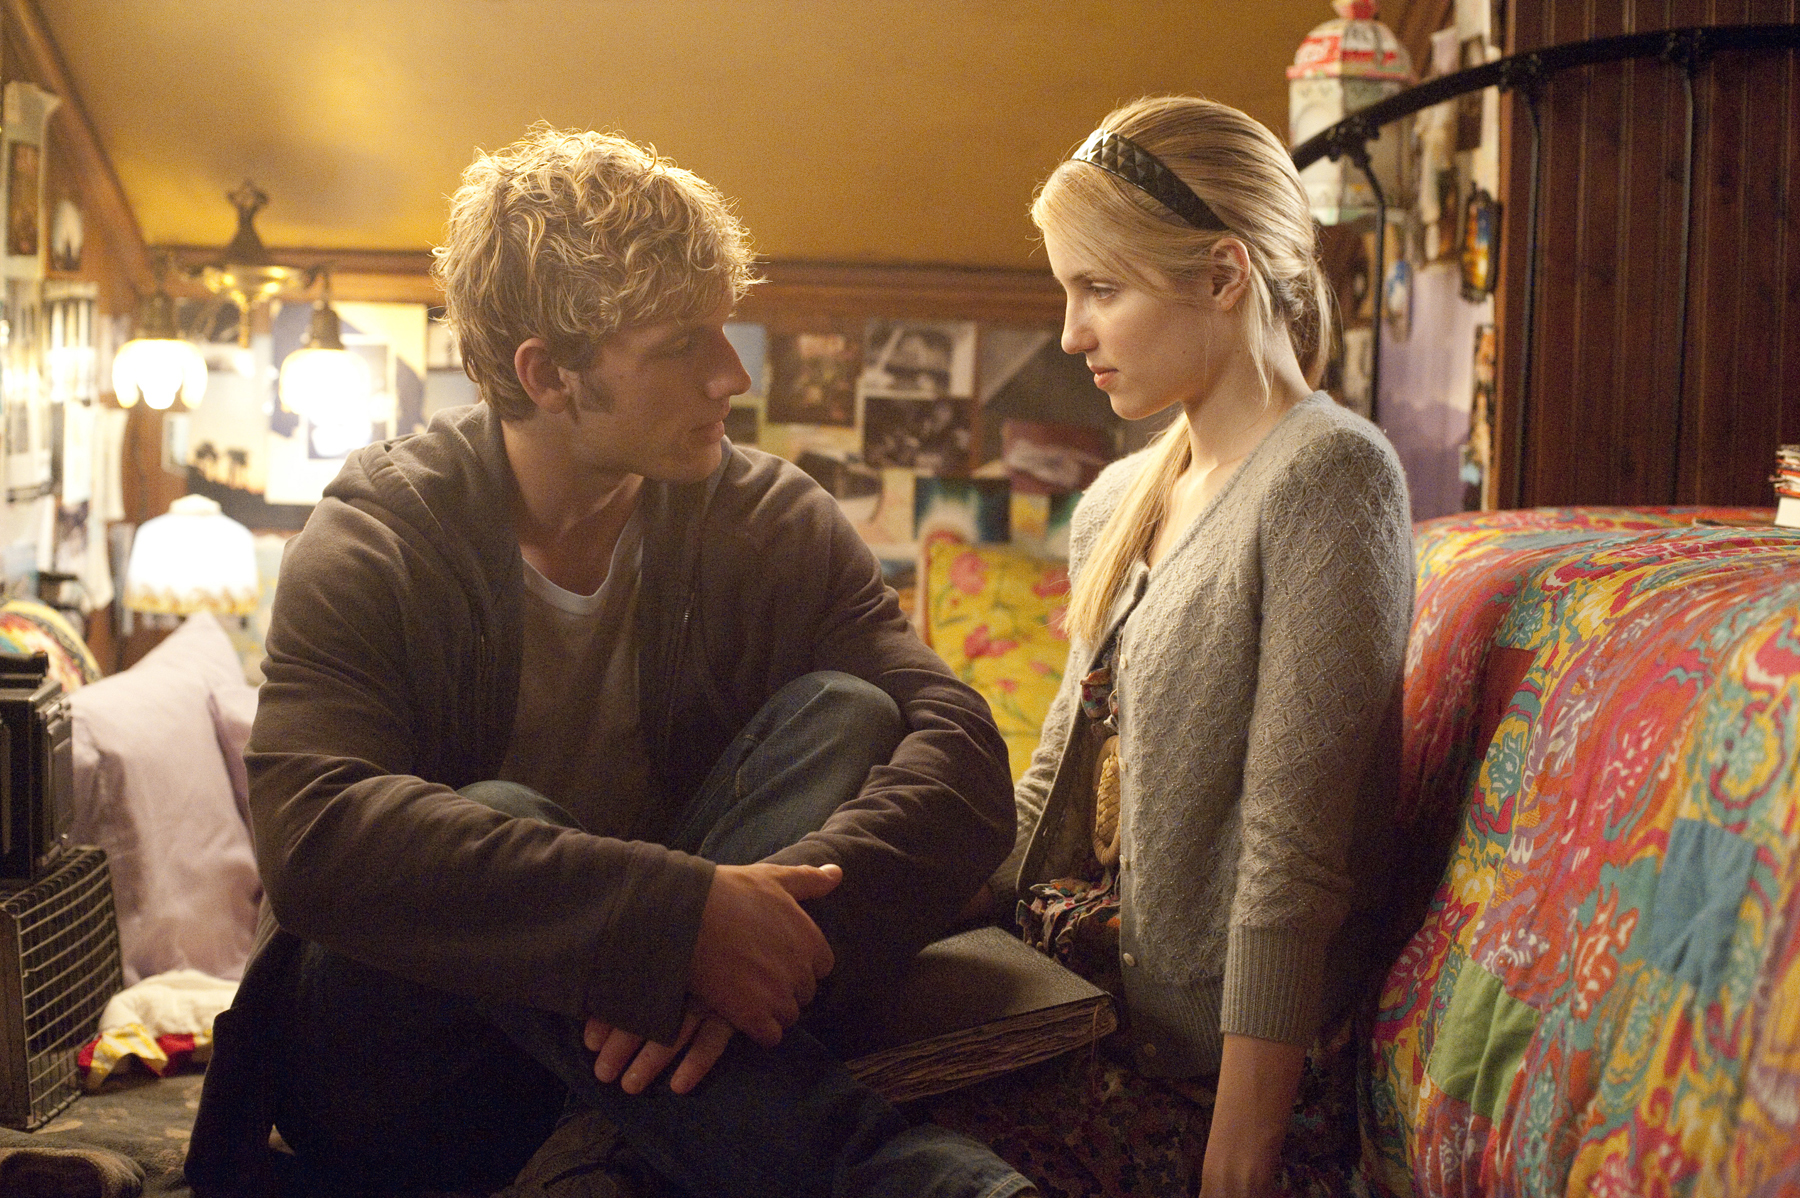 http://alexthebeast.files.wordpress.com/2011/01/alex-pettyfer-and-diana-agron-in-i-am-number-four_2.jpg